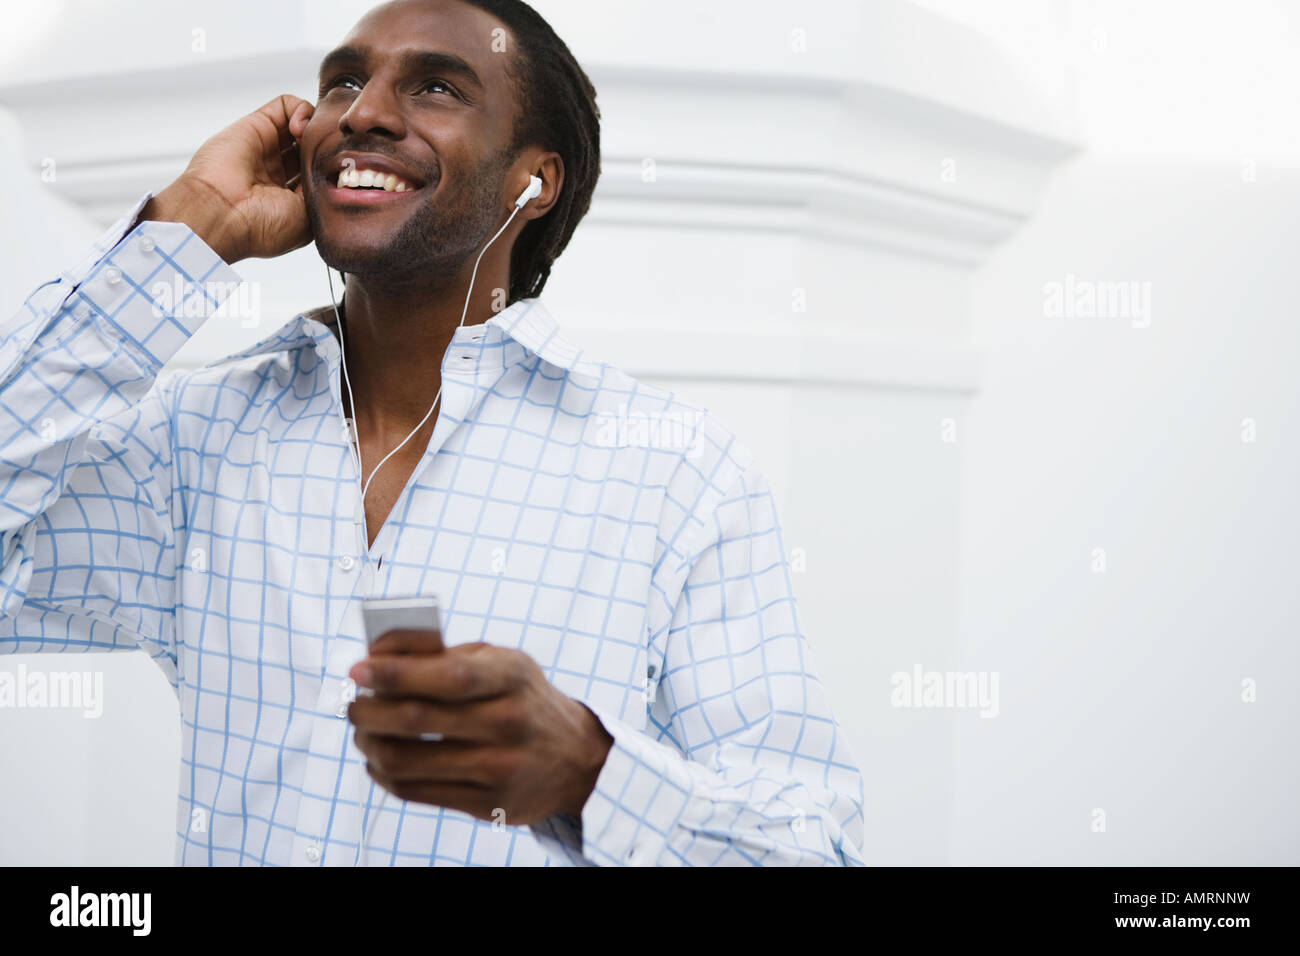 African man listening to mp3 player - Stock Image